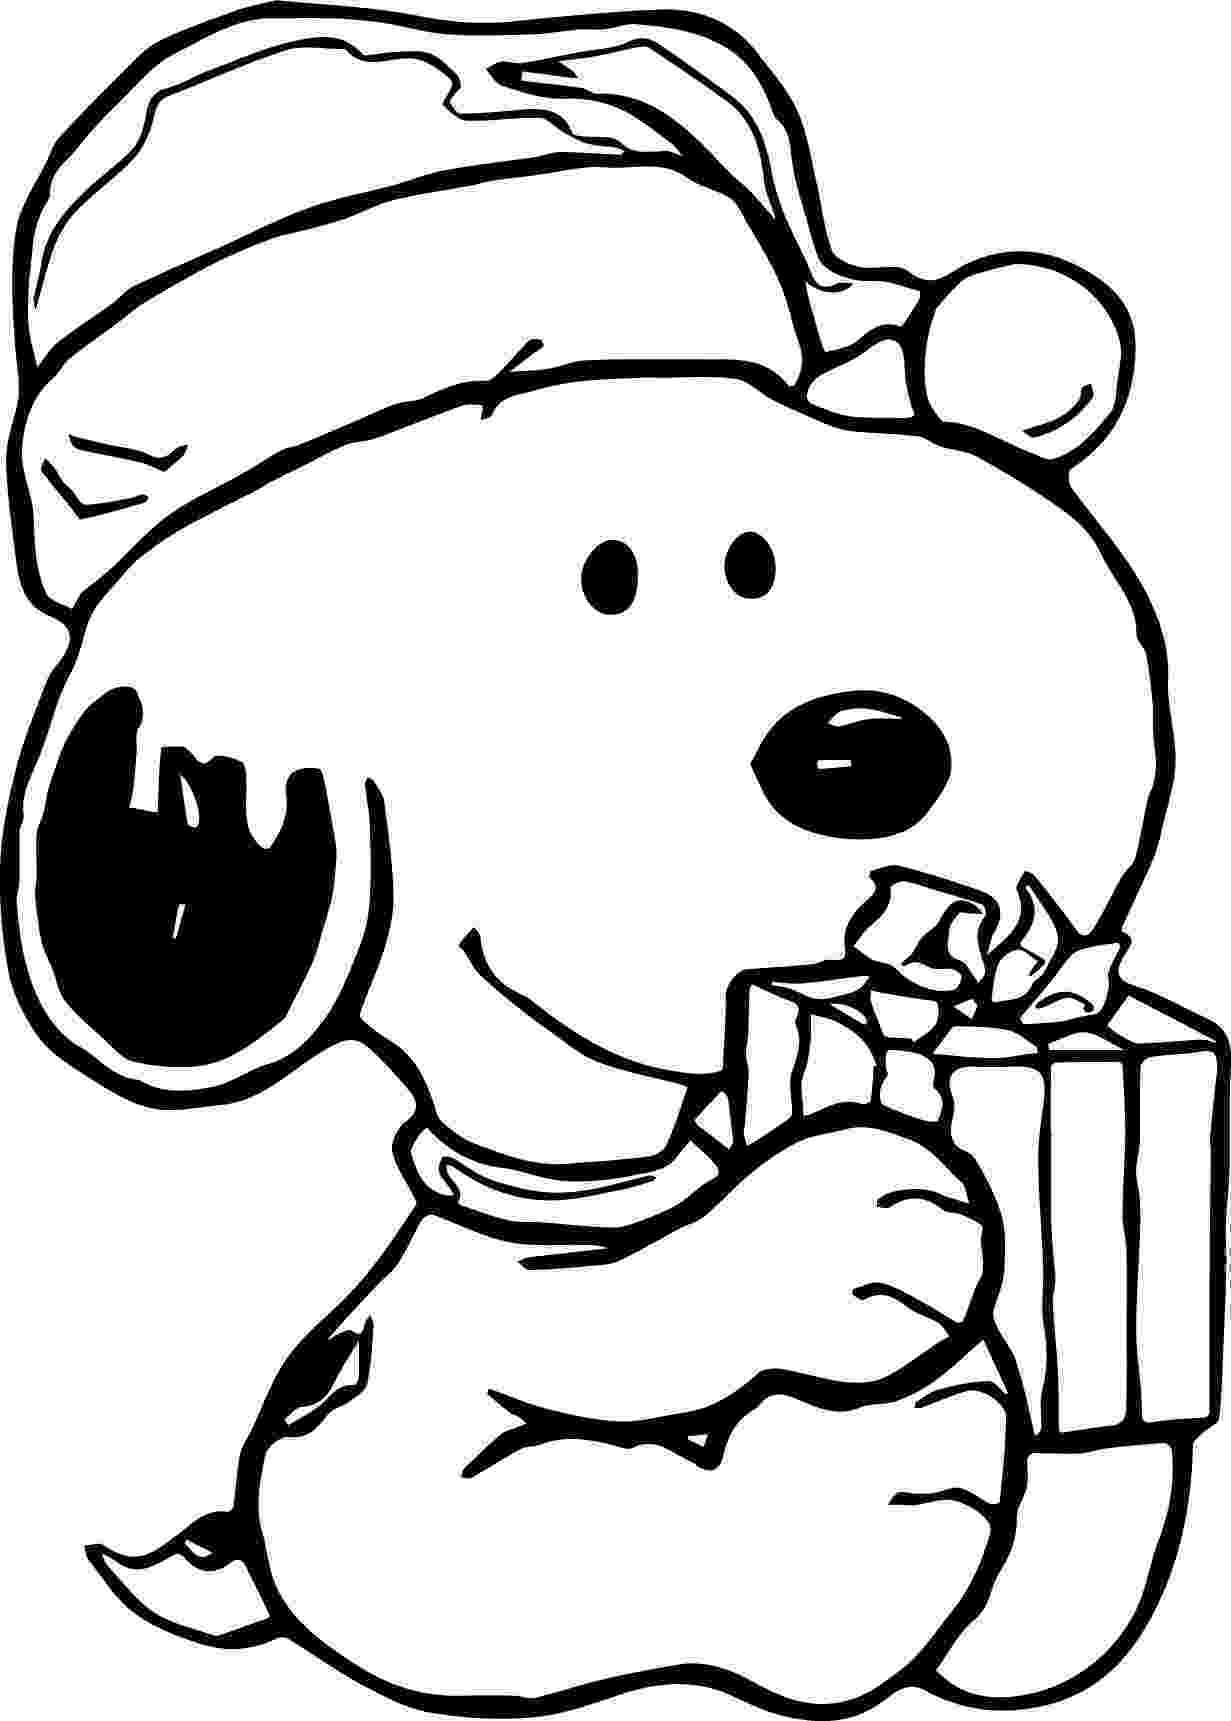 peanuts christmas coloring pages cool baby snoopy christmas coloring page snoopy coloring peanuts christmas pages coloring